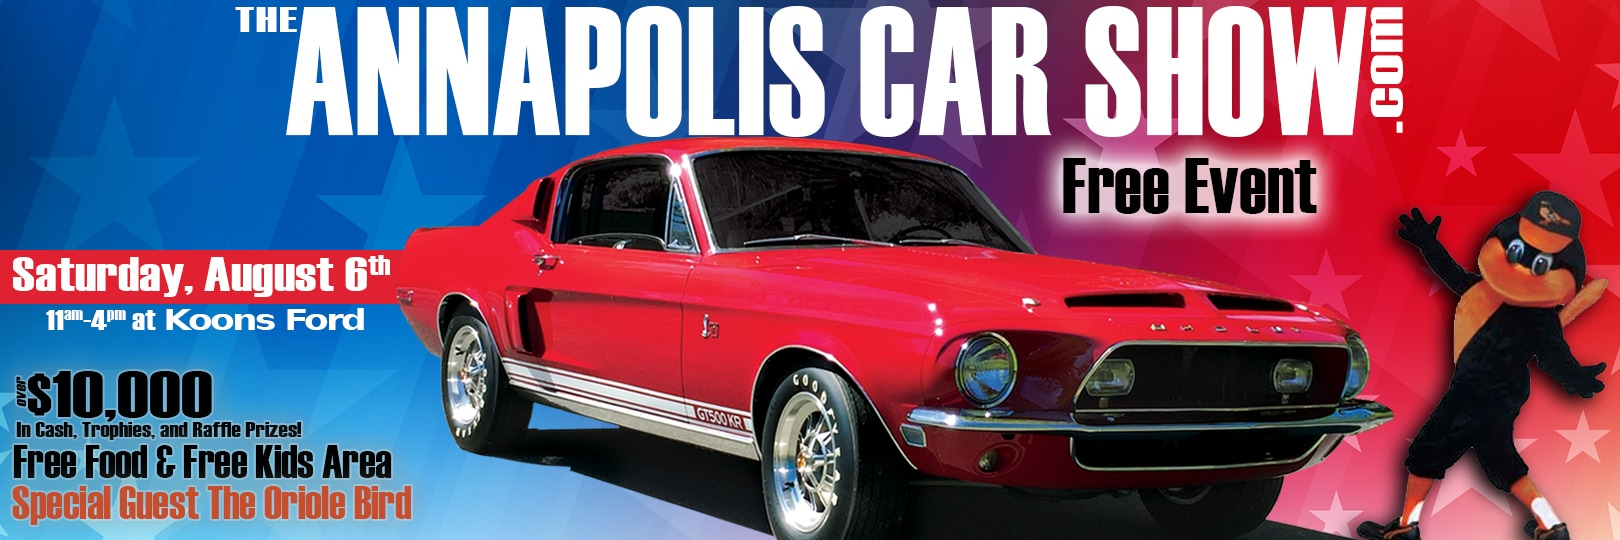 the annapolis car show